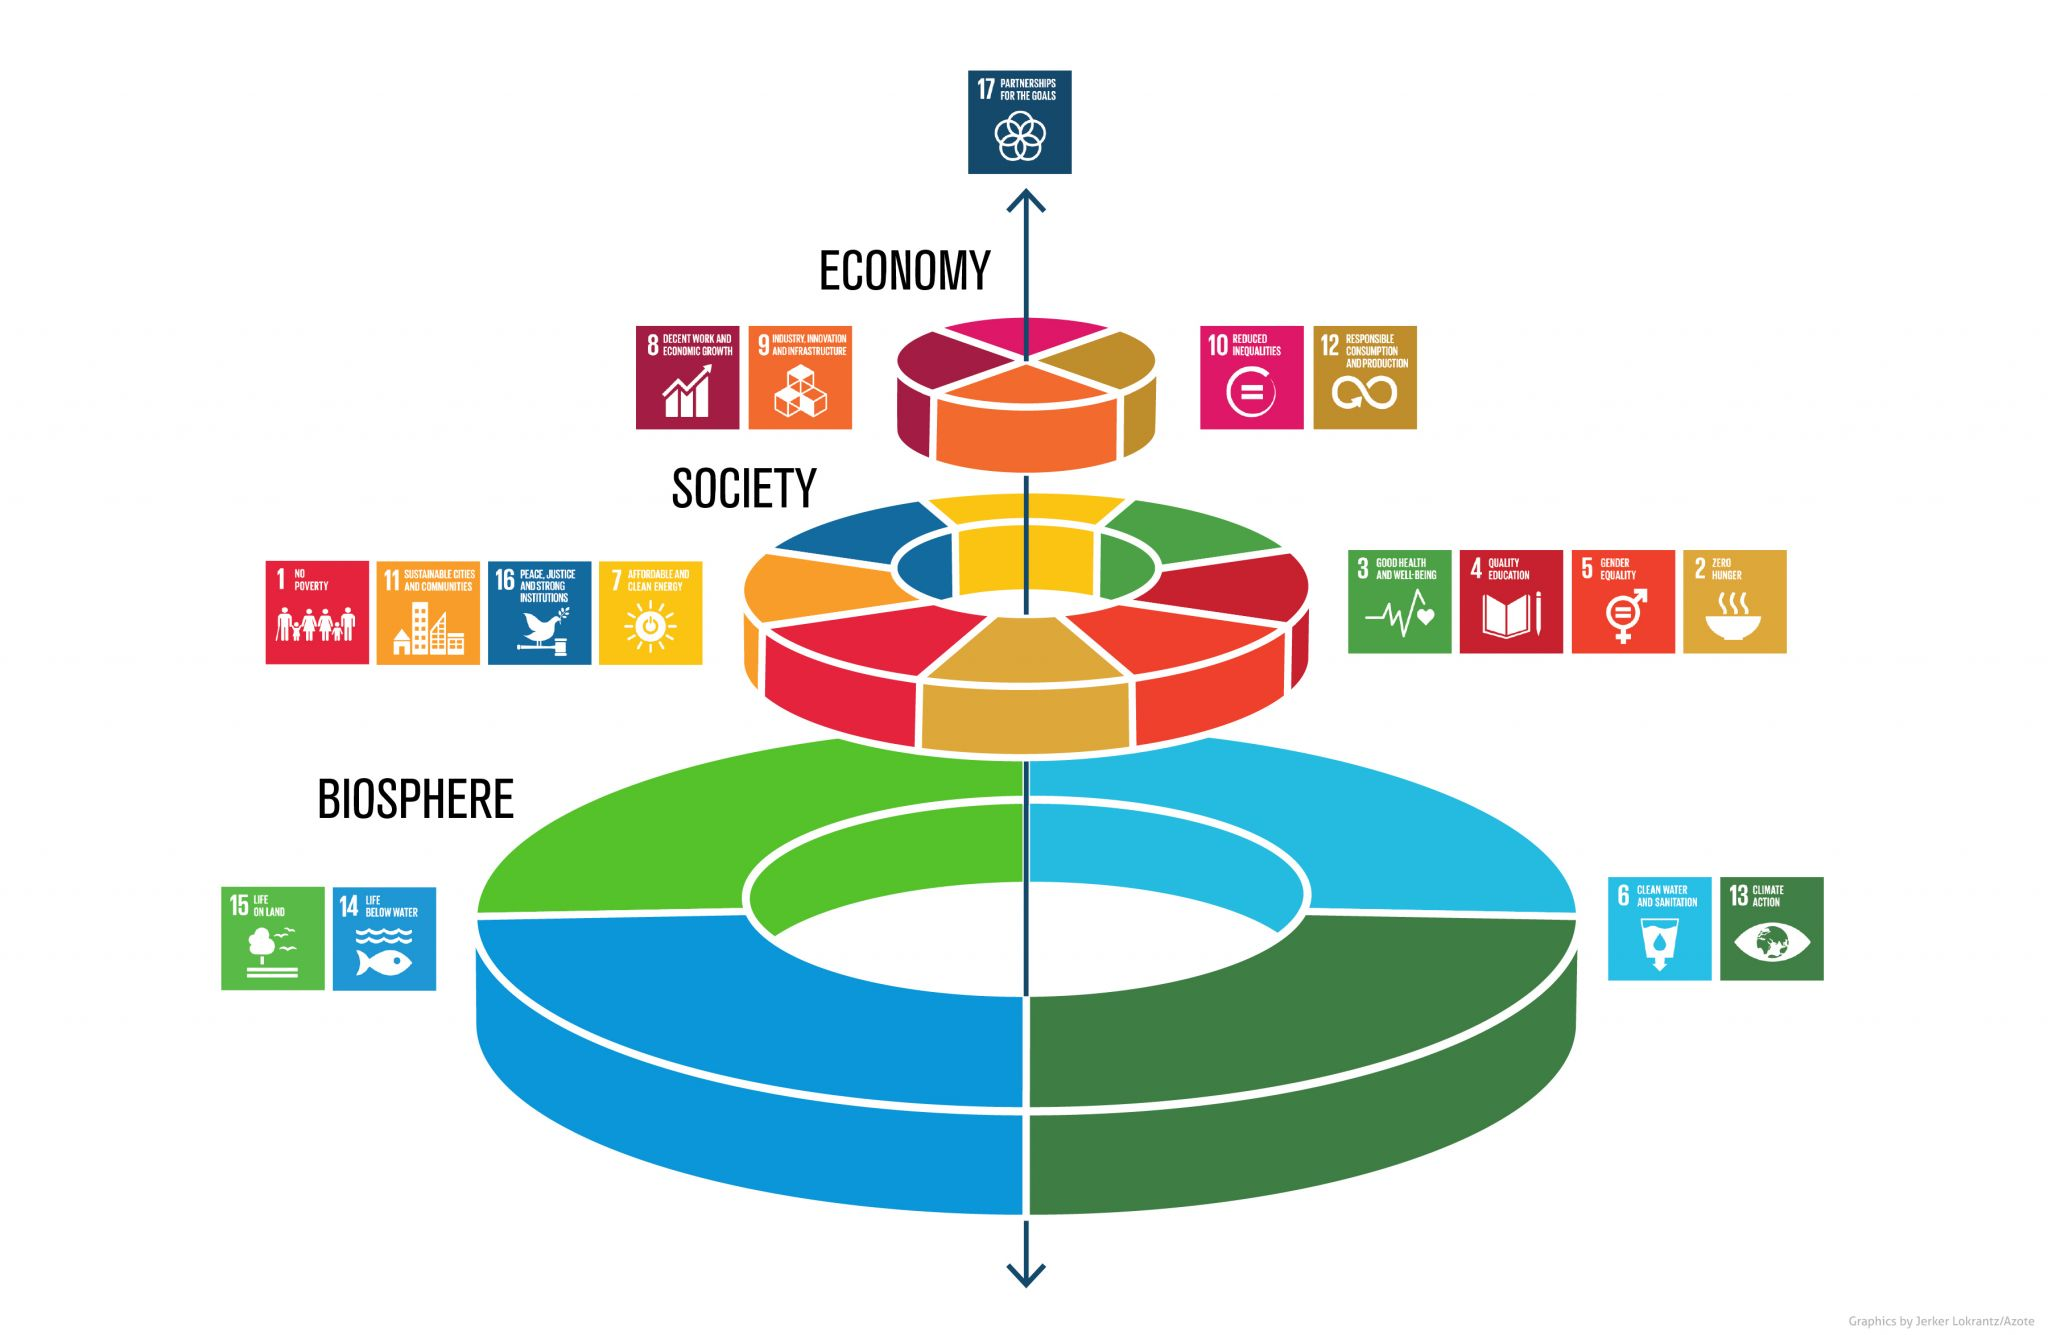 Wedding cake model of the United Nations Sustainable Development Goals.